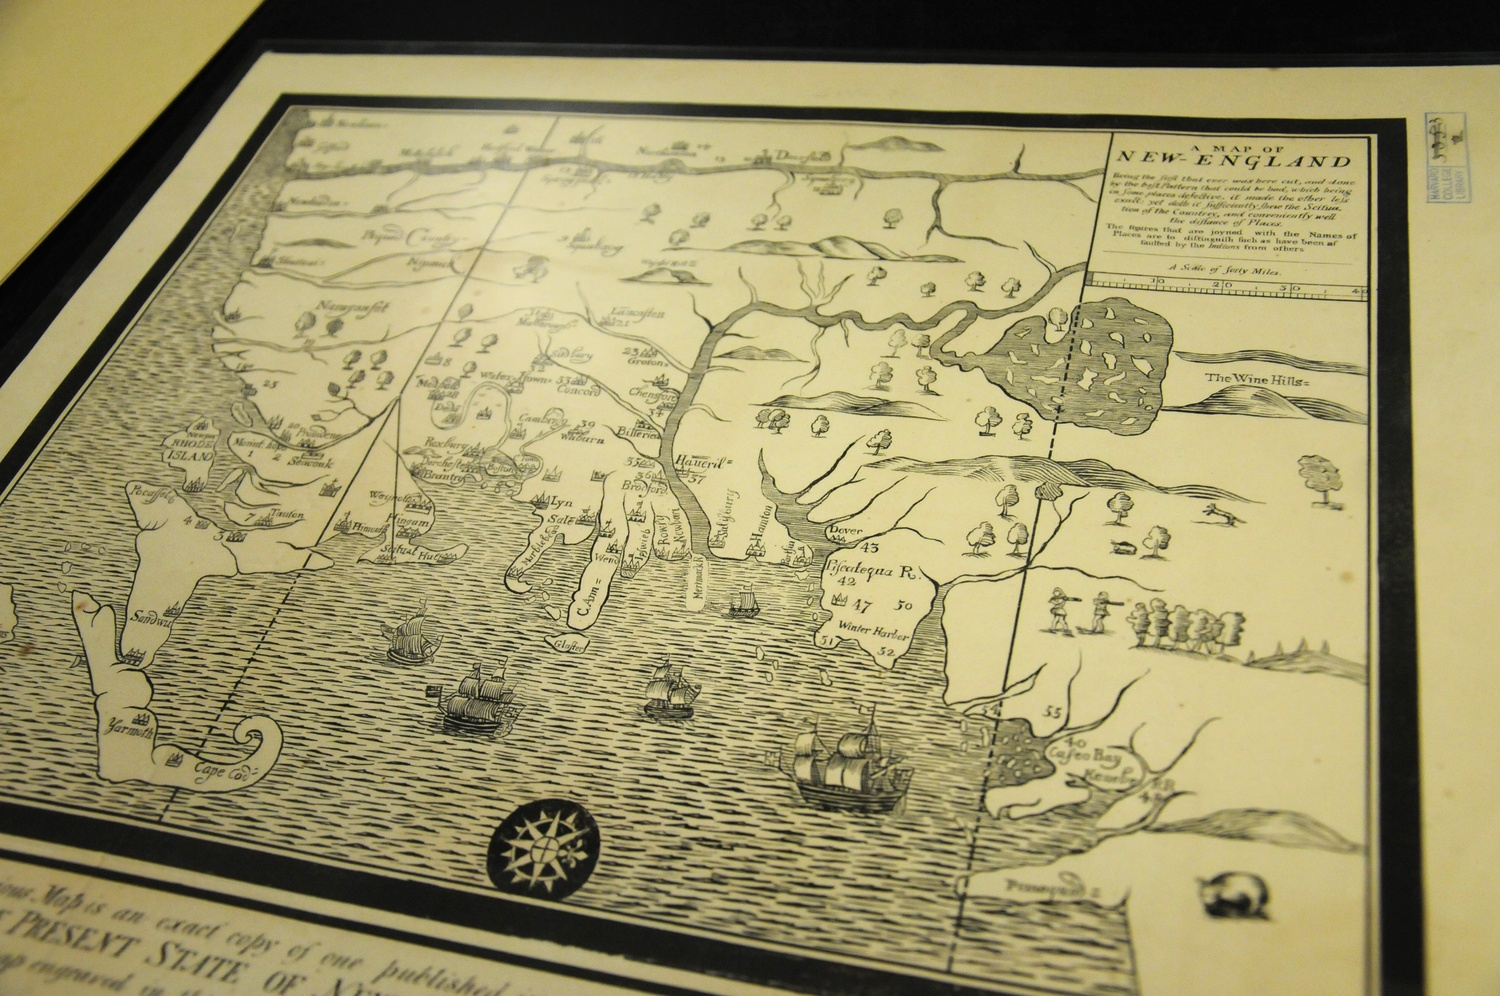 A 19th Century replica of an 18th Century promotional map of New England. It is housed in the Harvard Map Collection in the Pusey Library.